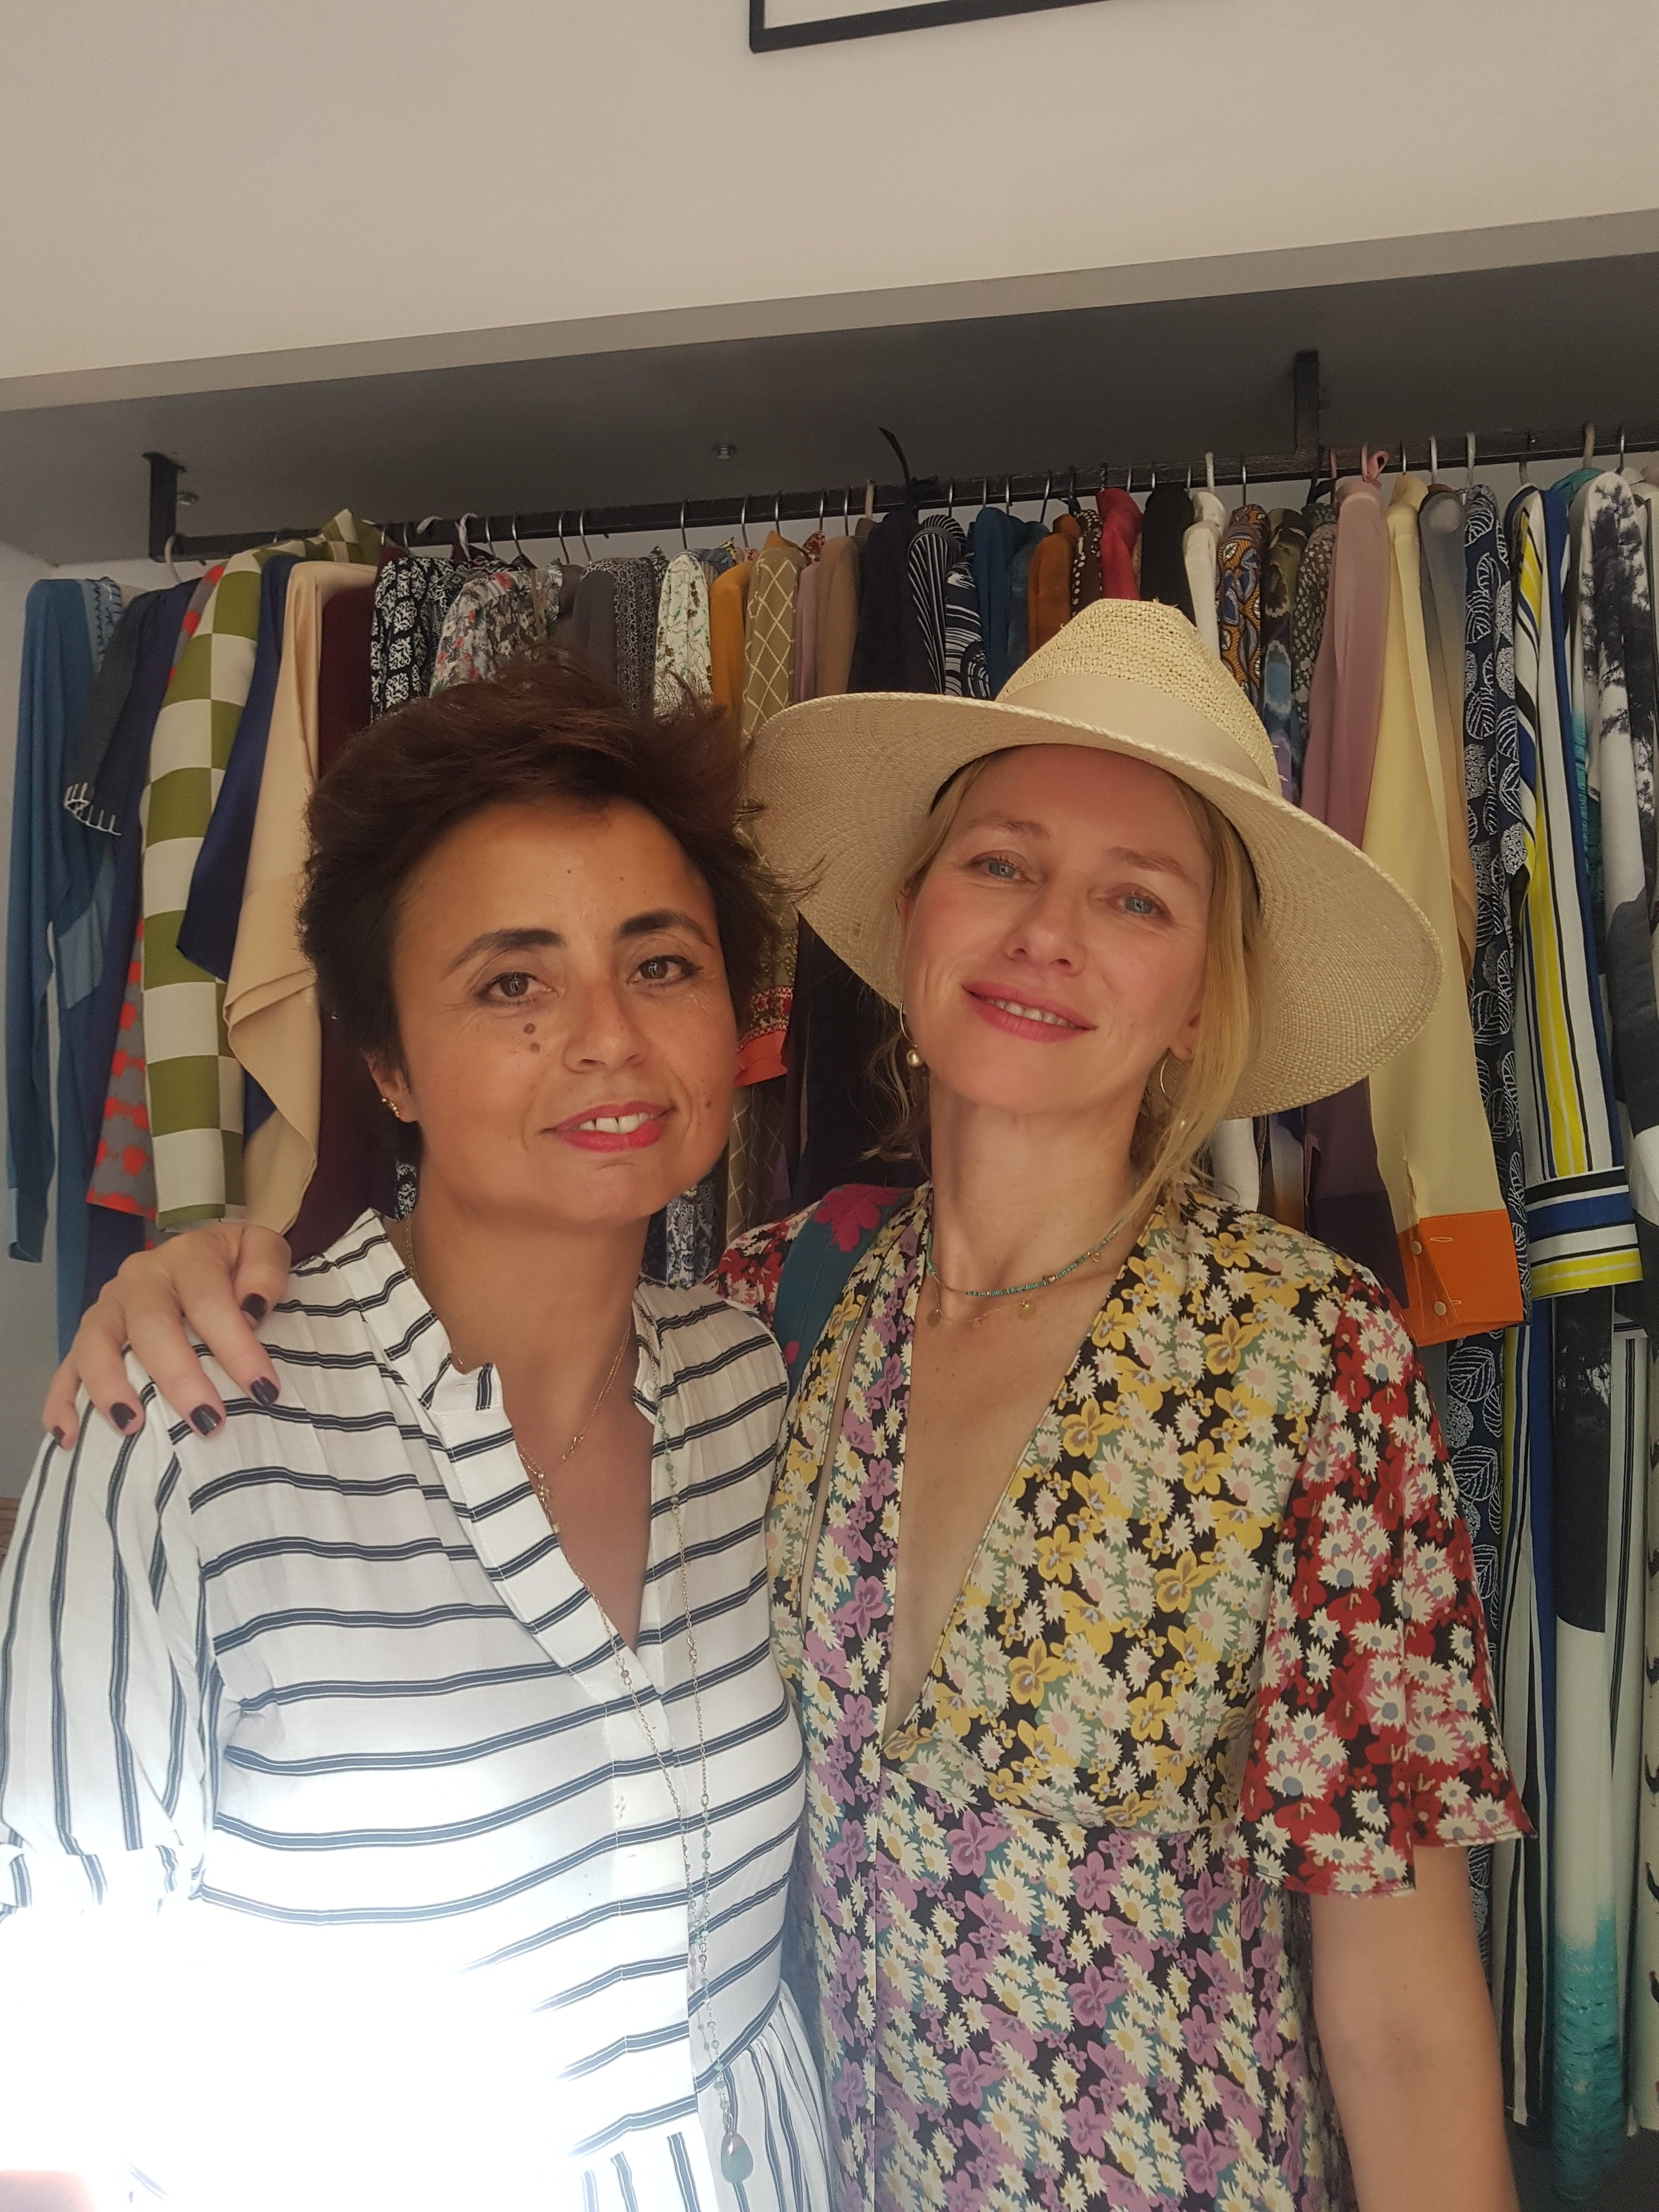 Naomi Watts with Meriem Rawlings at Hanout Boutique